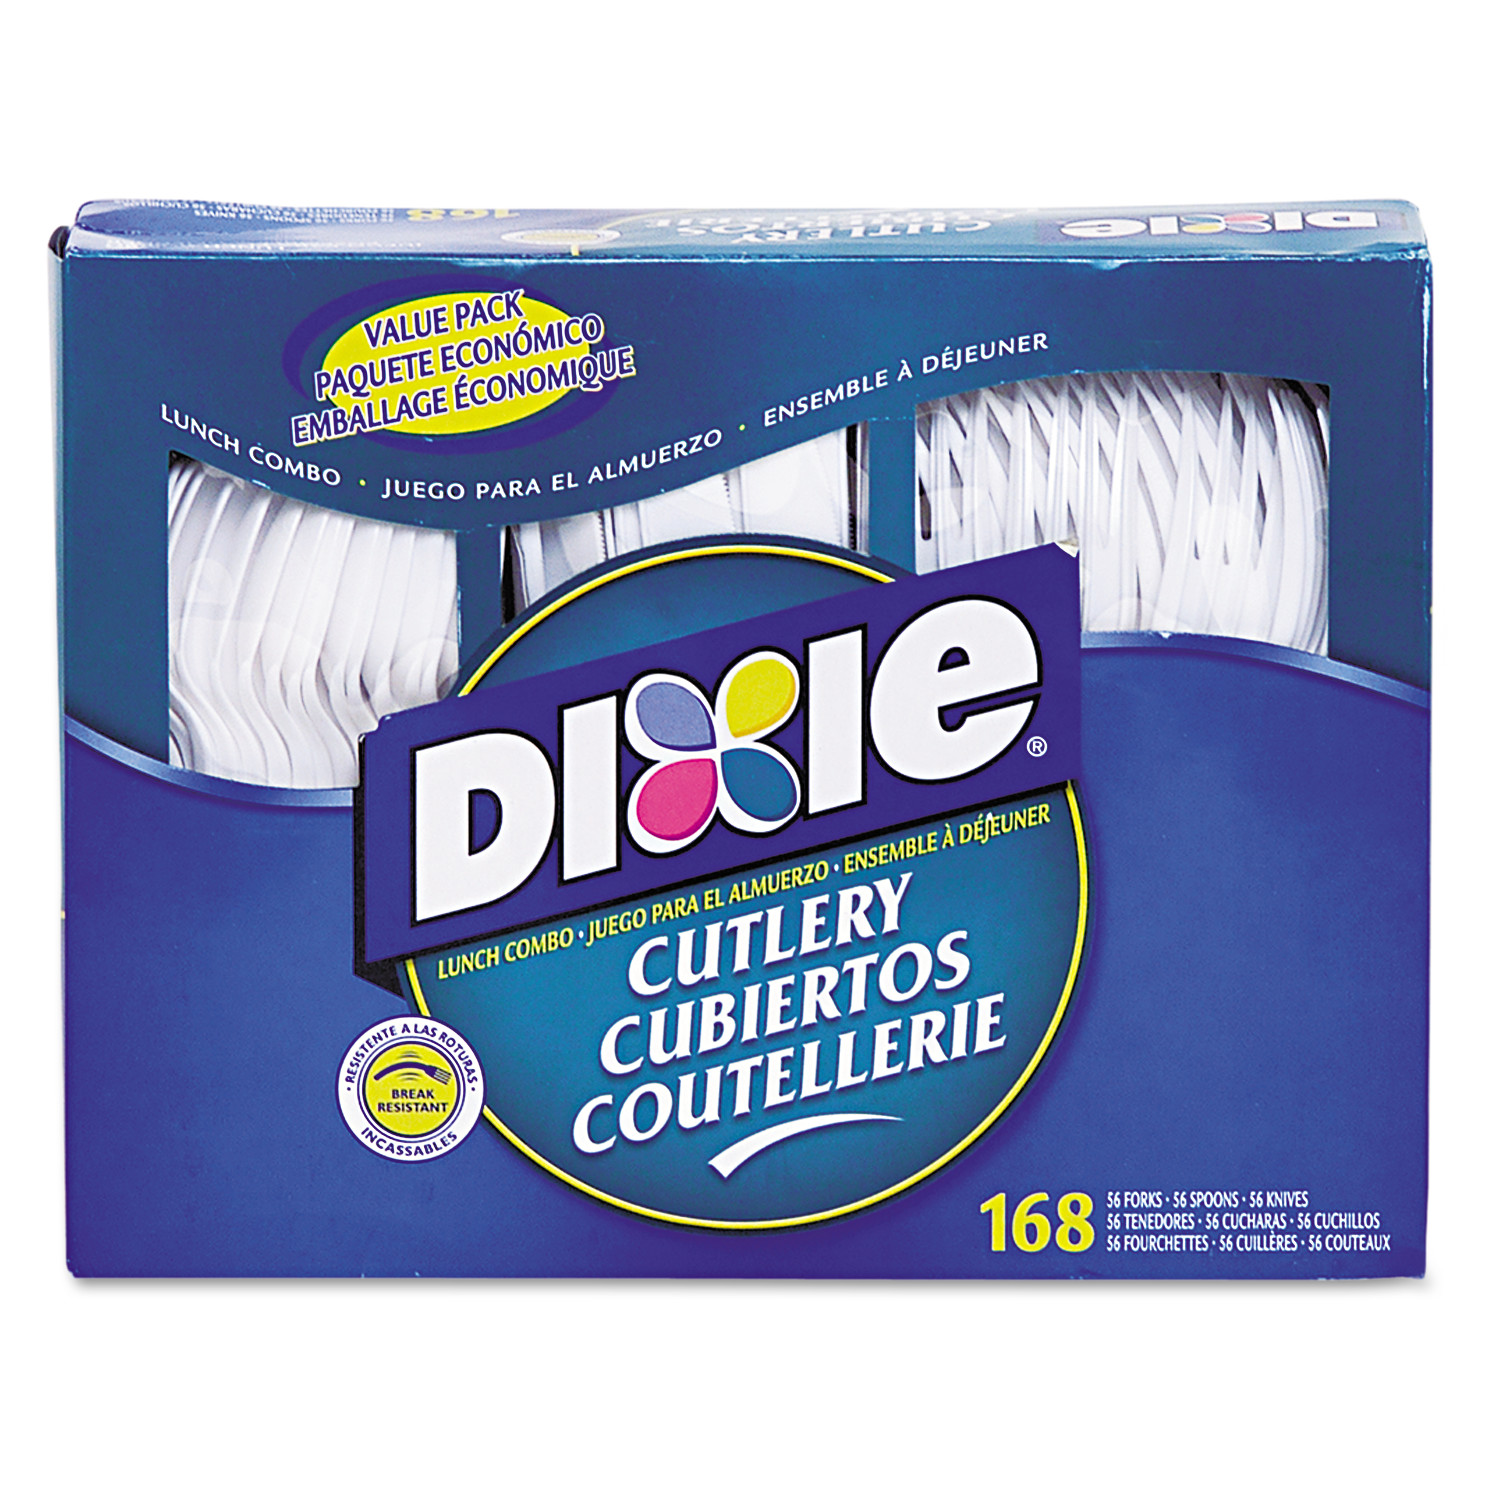 Dixie Combo Pack, Tray w/ White Plastic Utensils, 56 Forks, 56 Knives, 56 Spoons -DXECM168